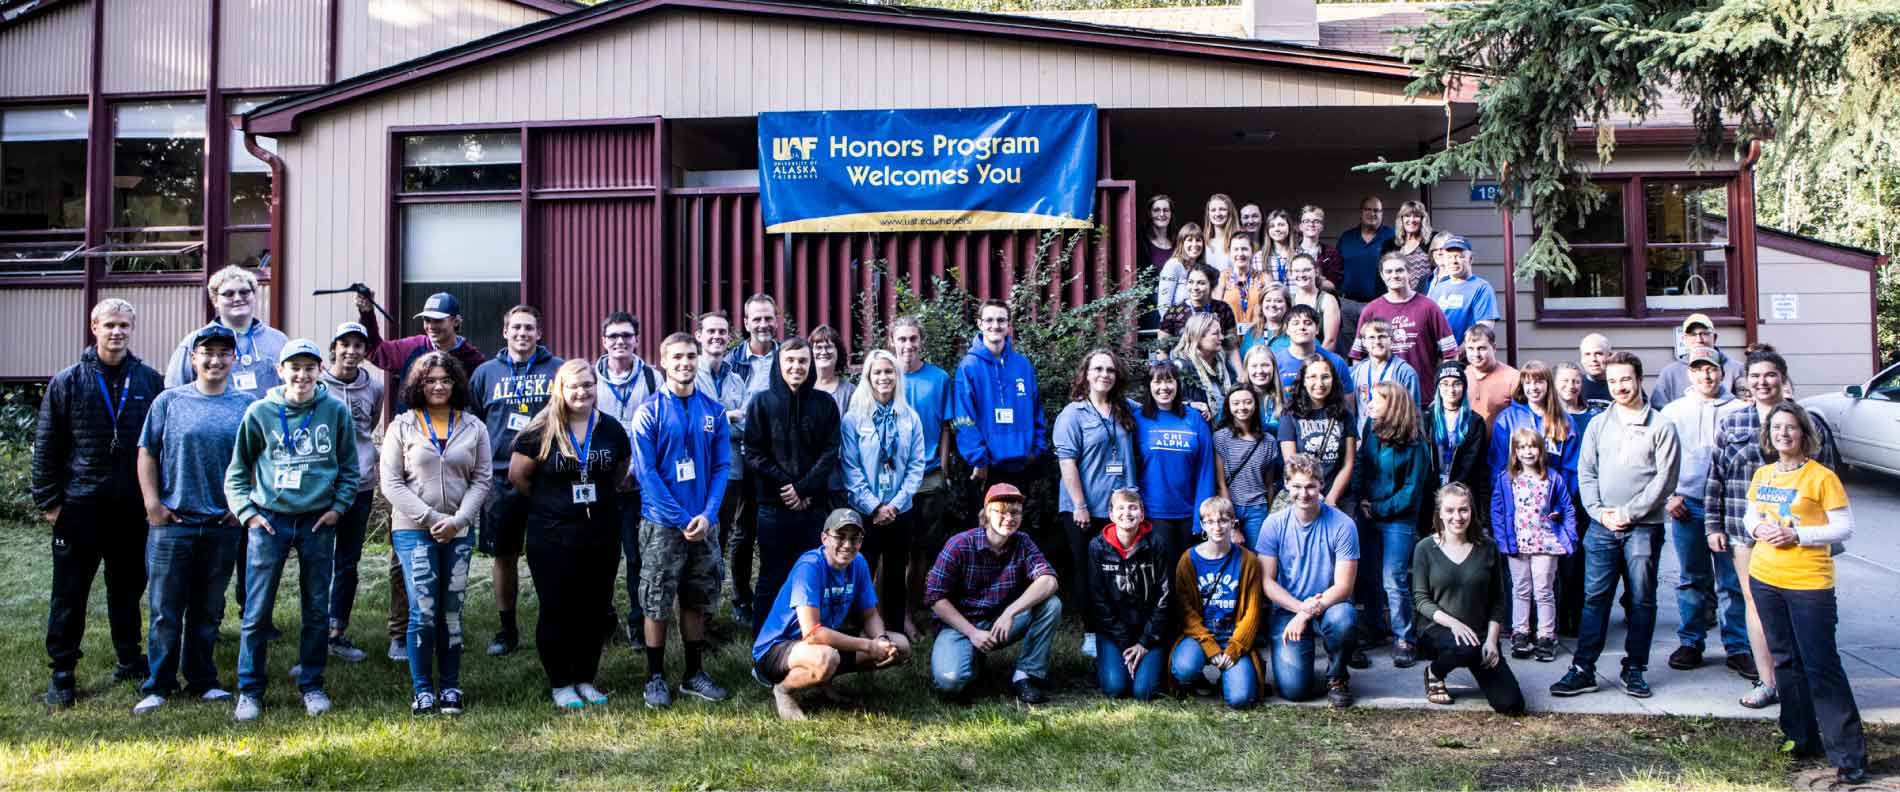 UAF Honors Students group photo in front of the Honors House